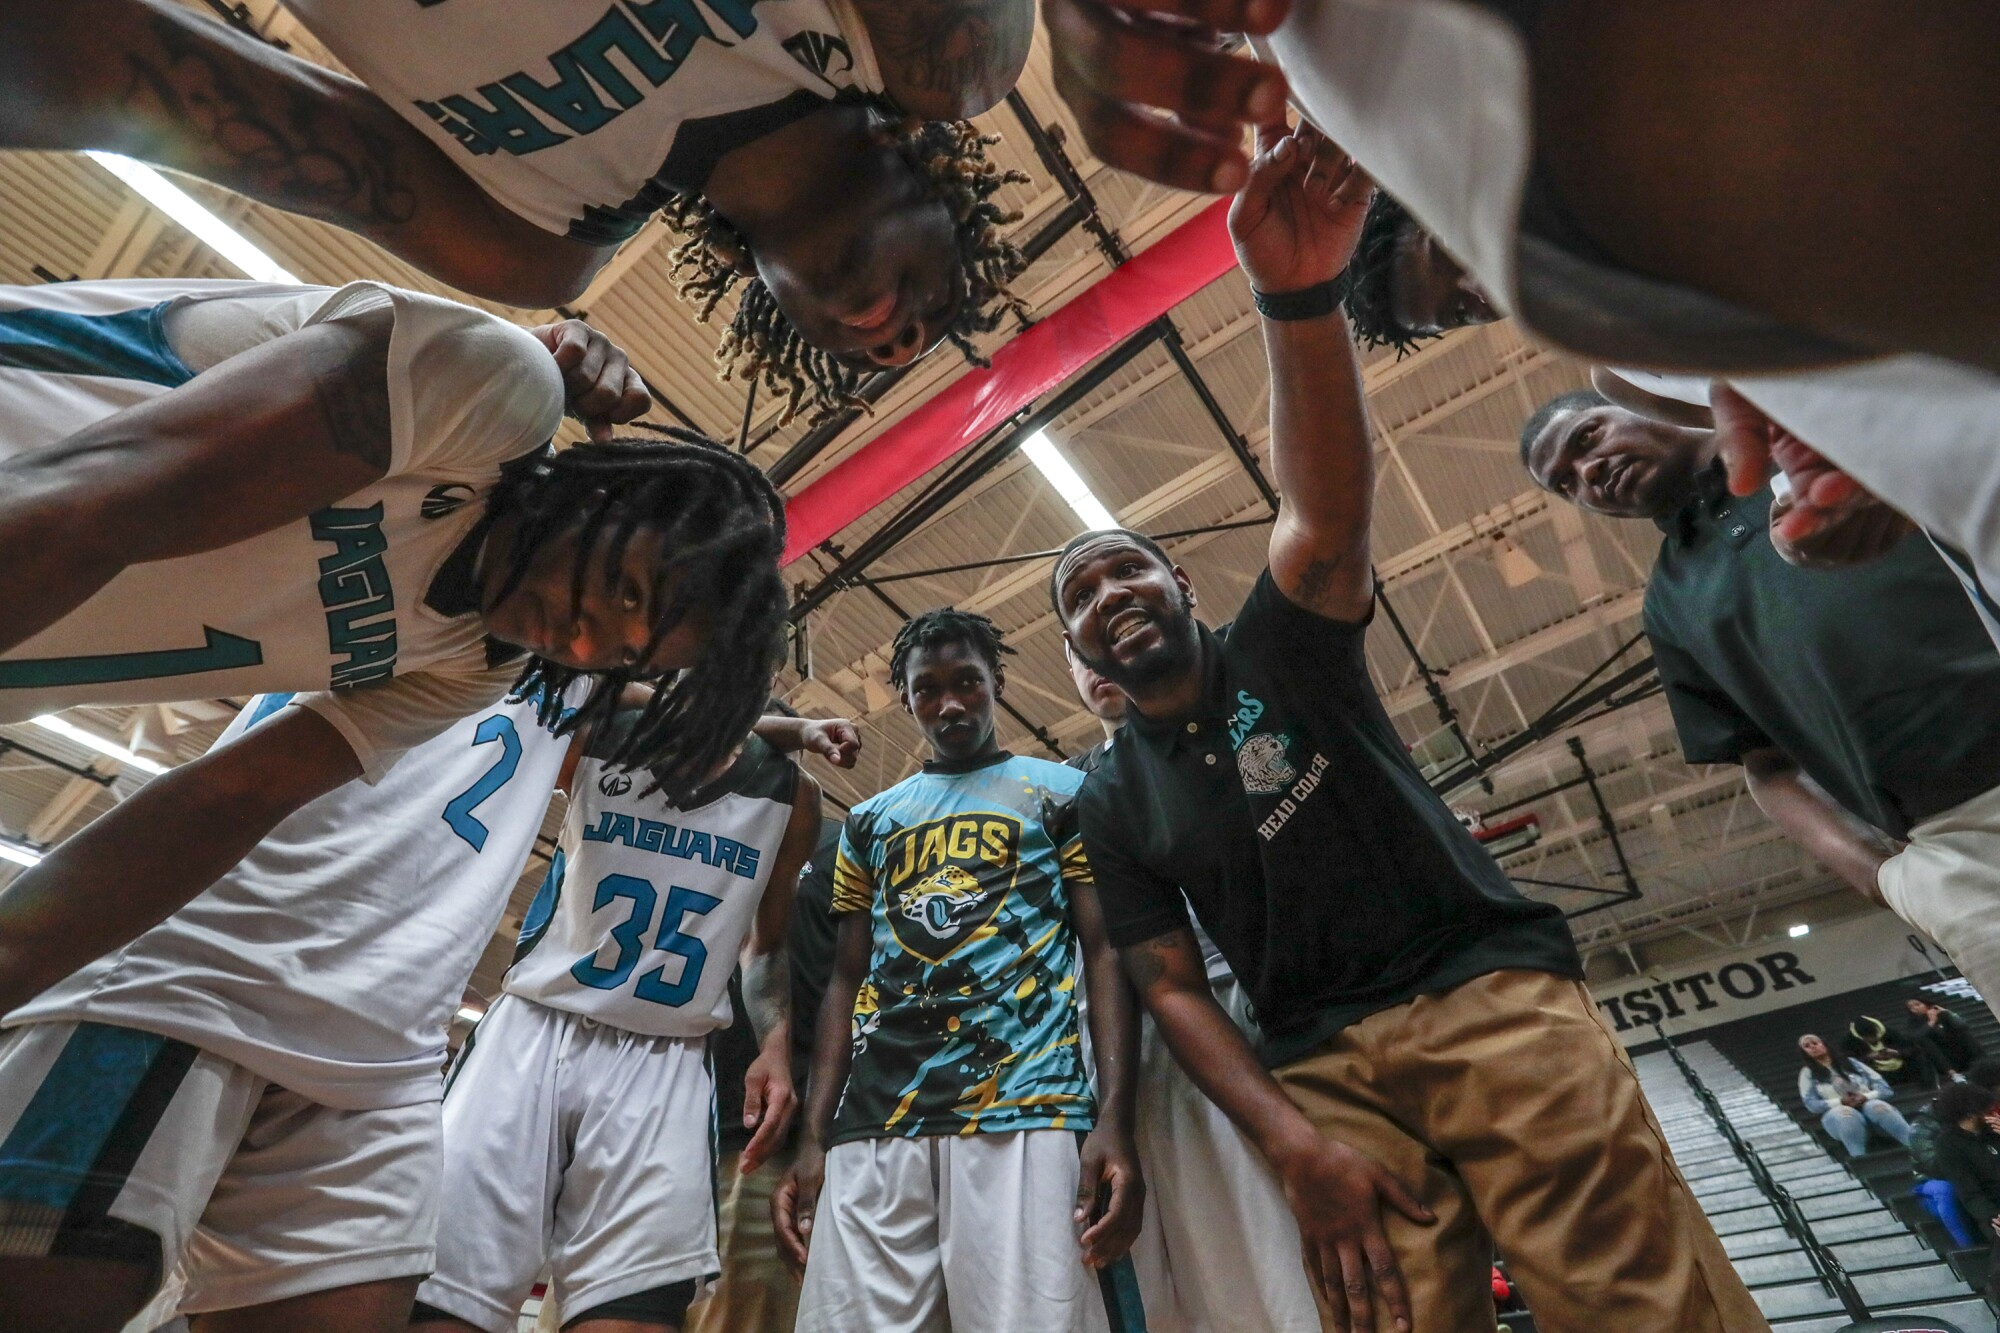 Flint coach Demarkus Jackson talks to his players during a game timeout.